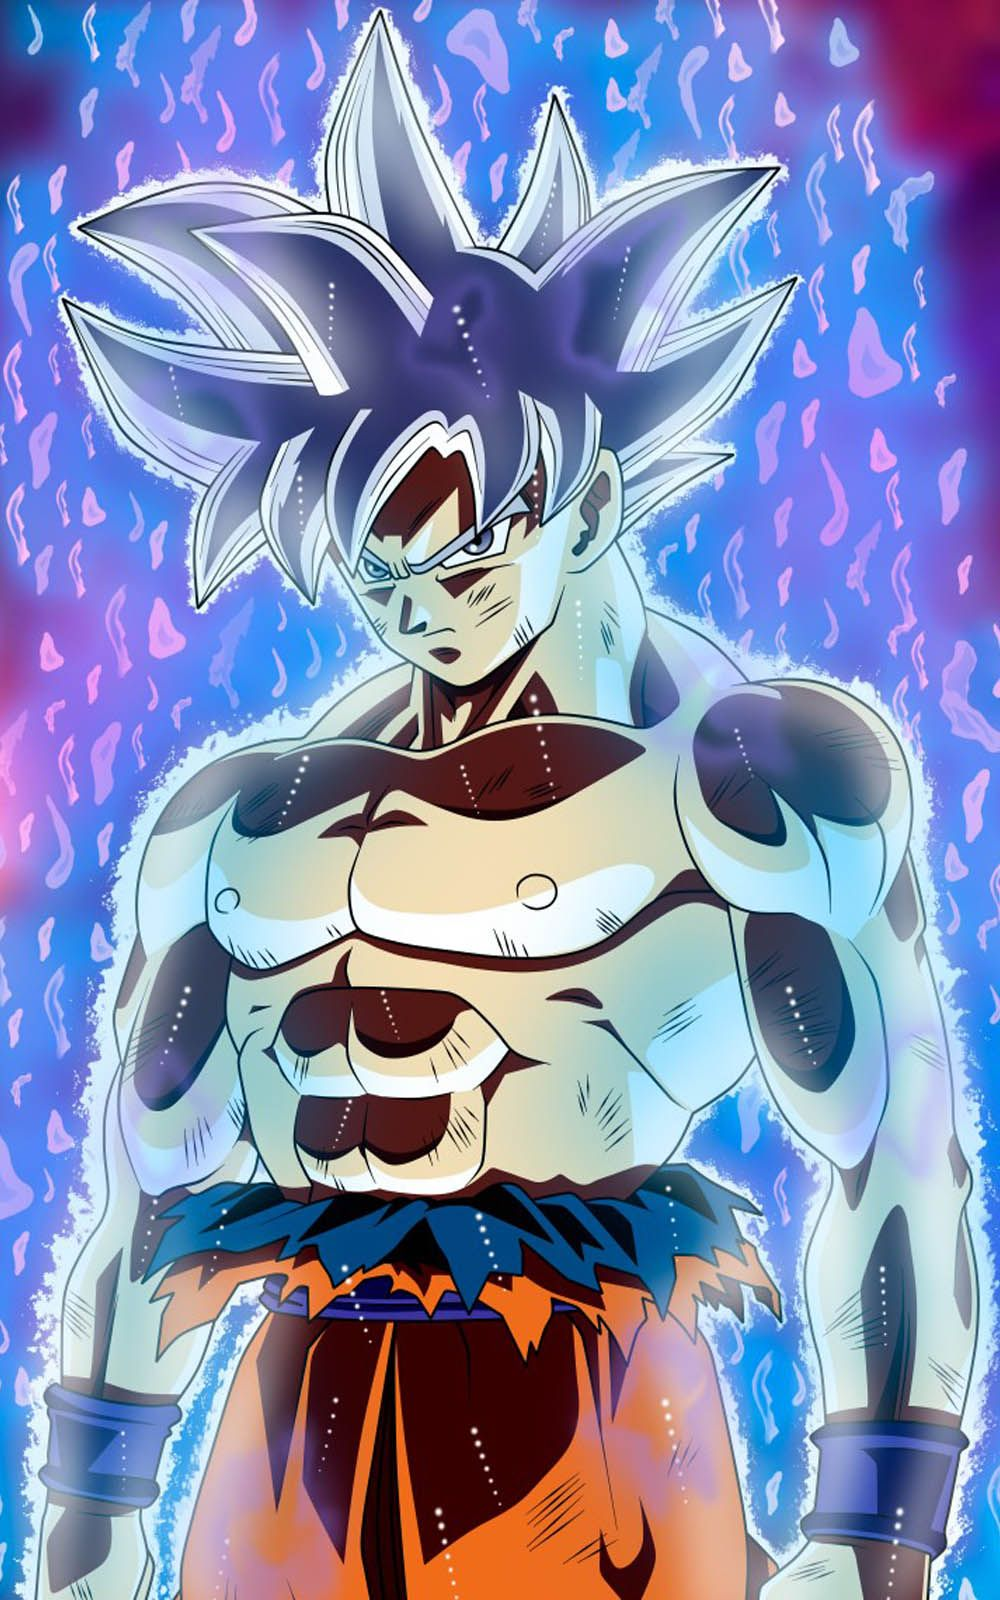 Ultra Instinct Goku Dragon Ball Super Dragon Ball Super Manga